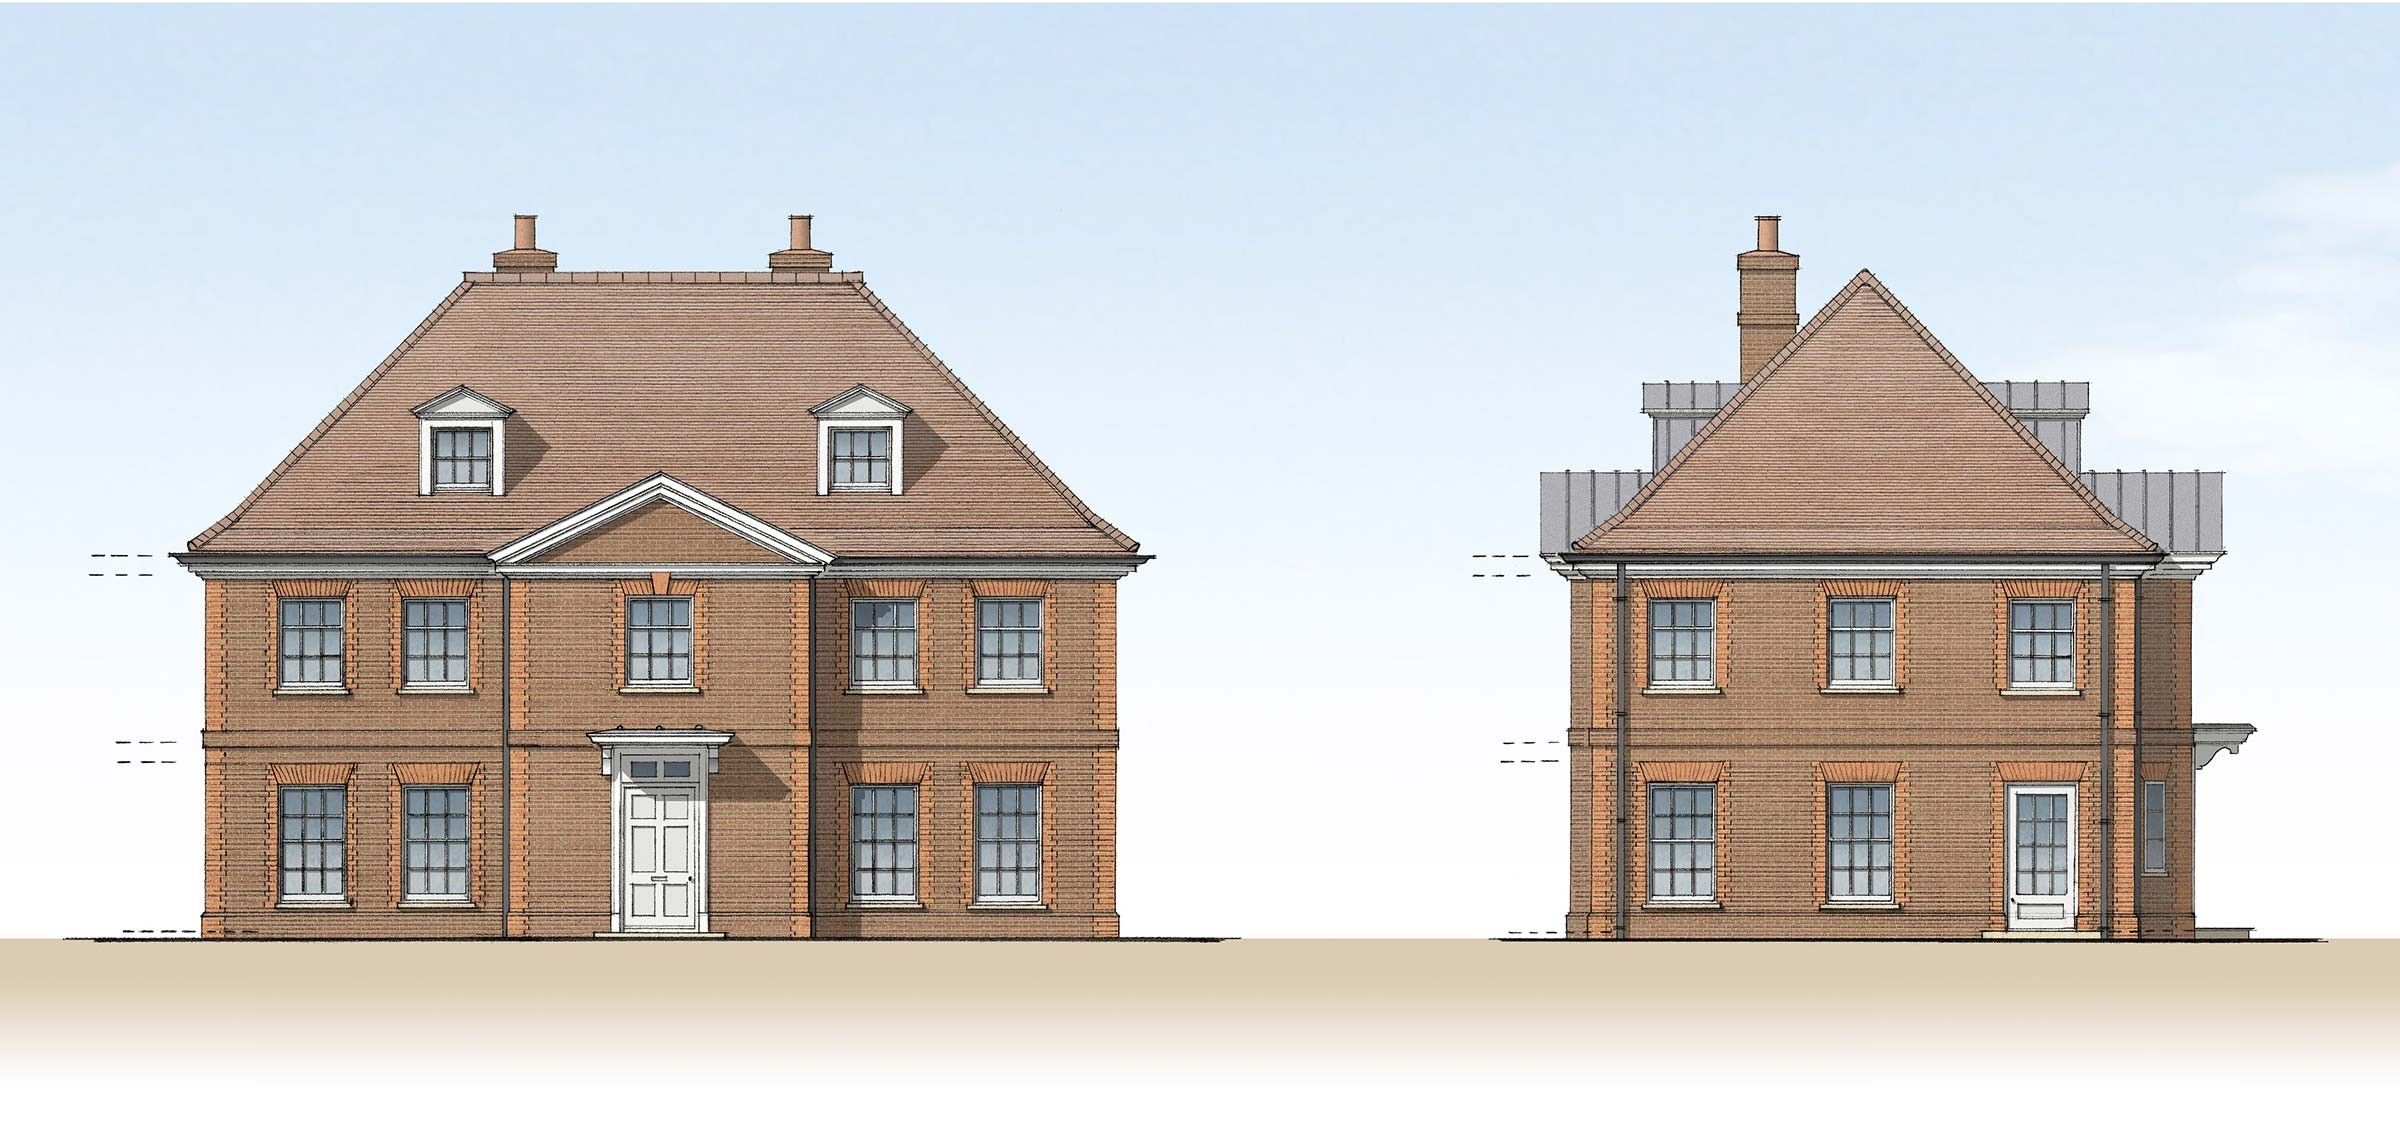 New housing at Wickhambreaux, Kent